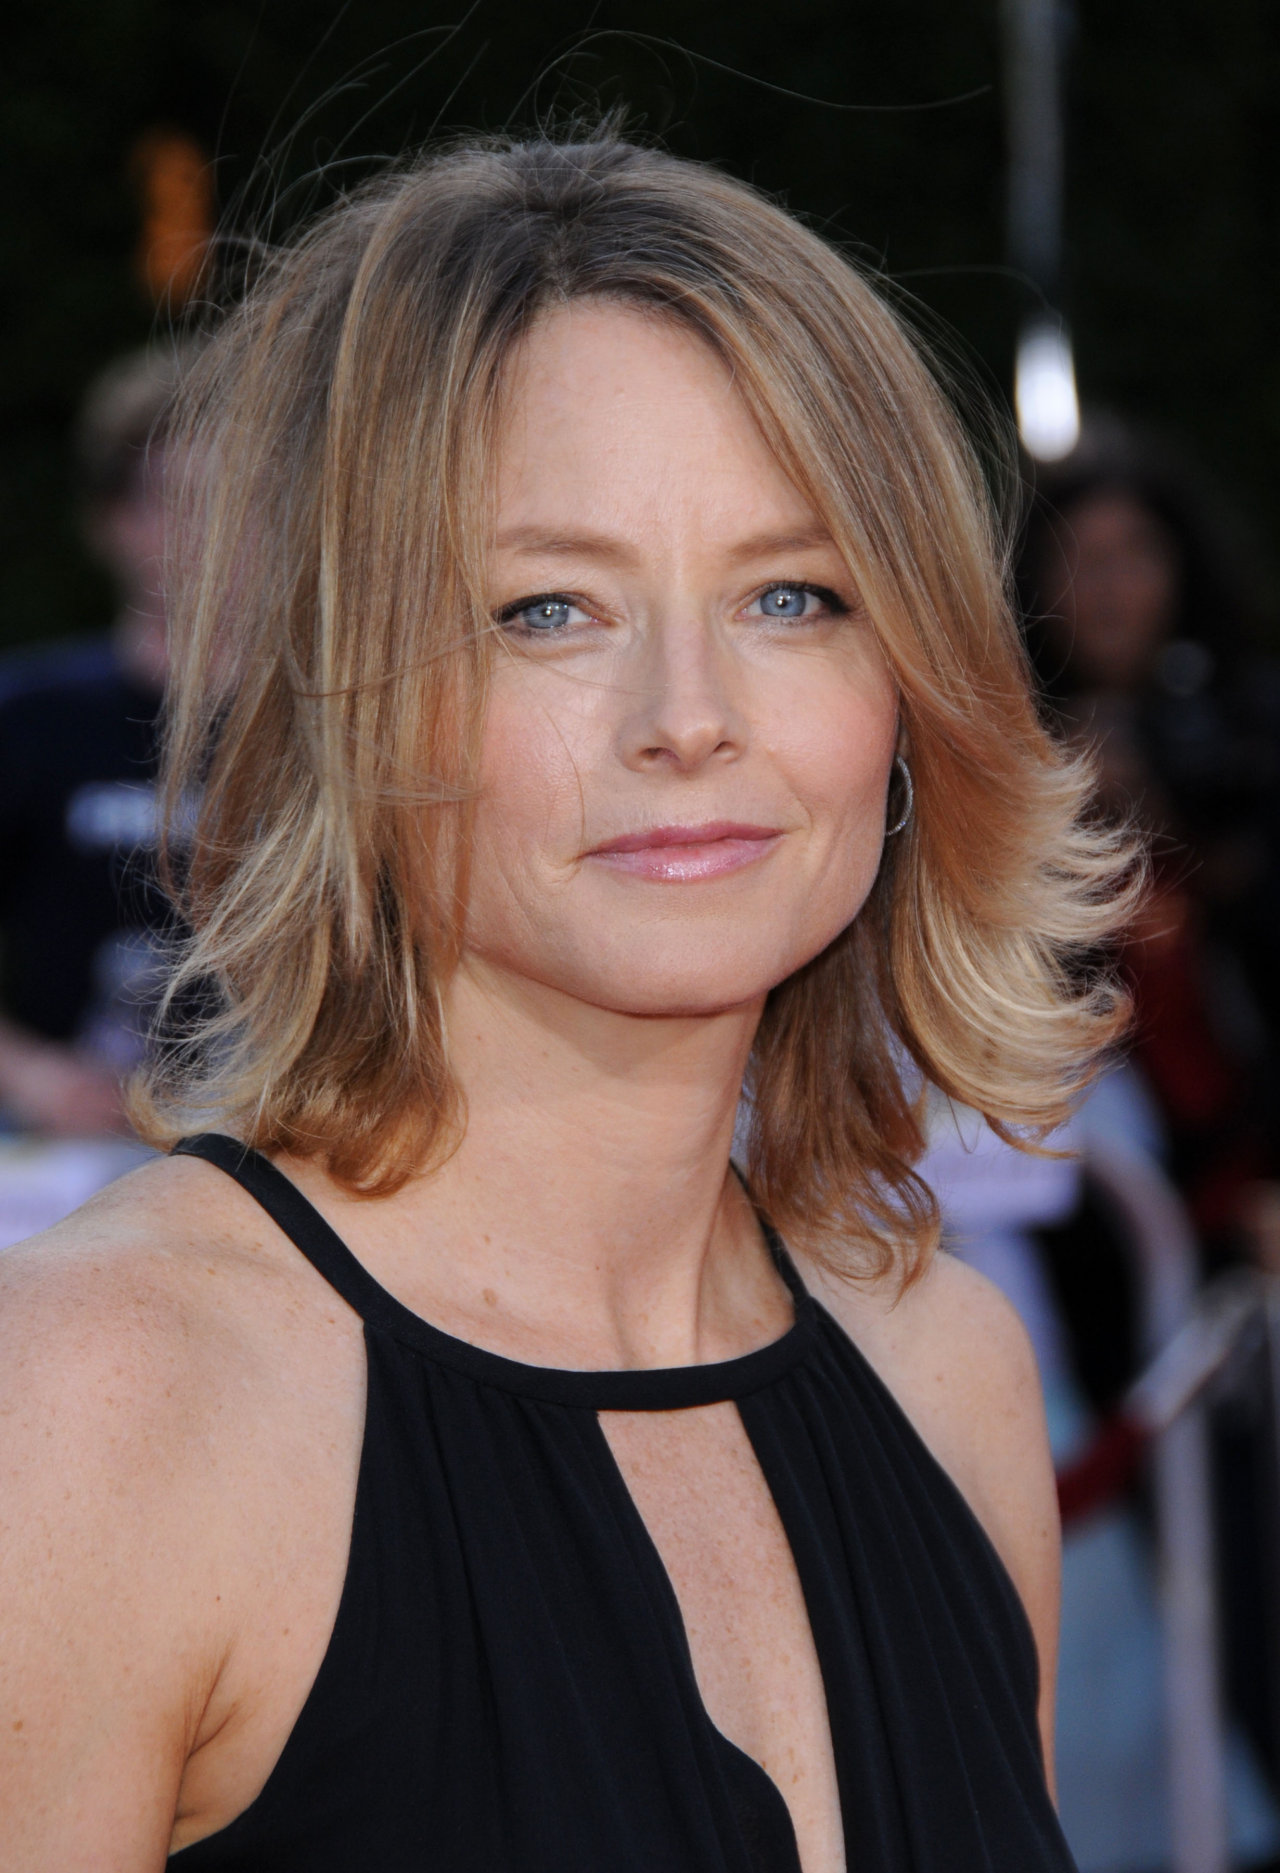 Wallpaper Love Jodi : Jodie Foster wallpapers (12254). Top rated Jodie Foster photos